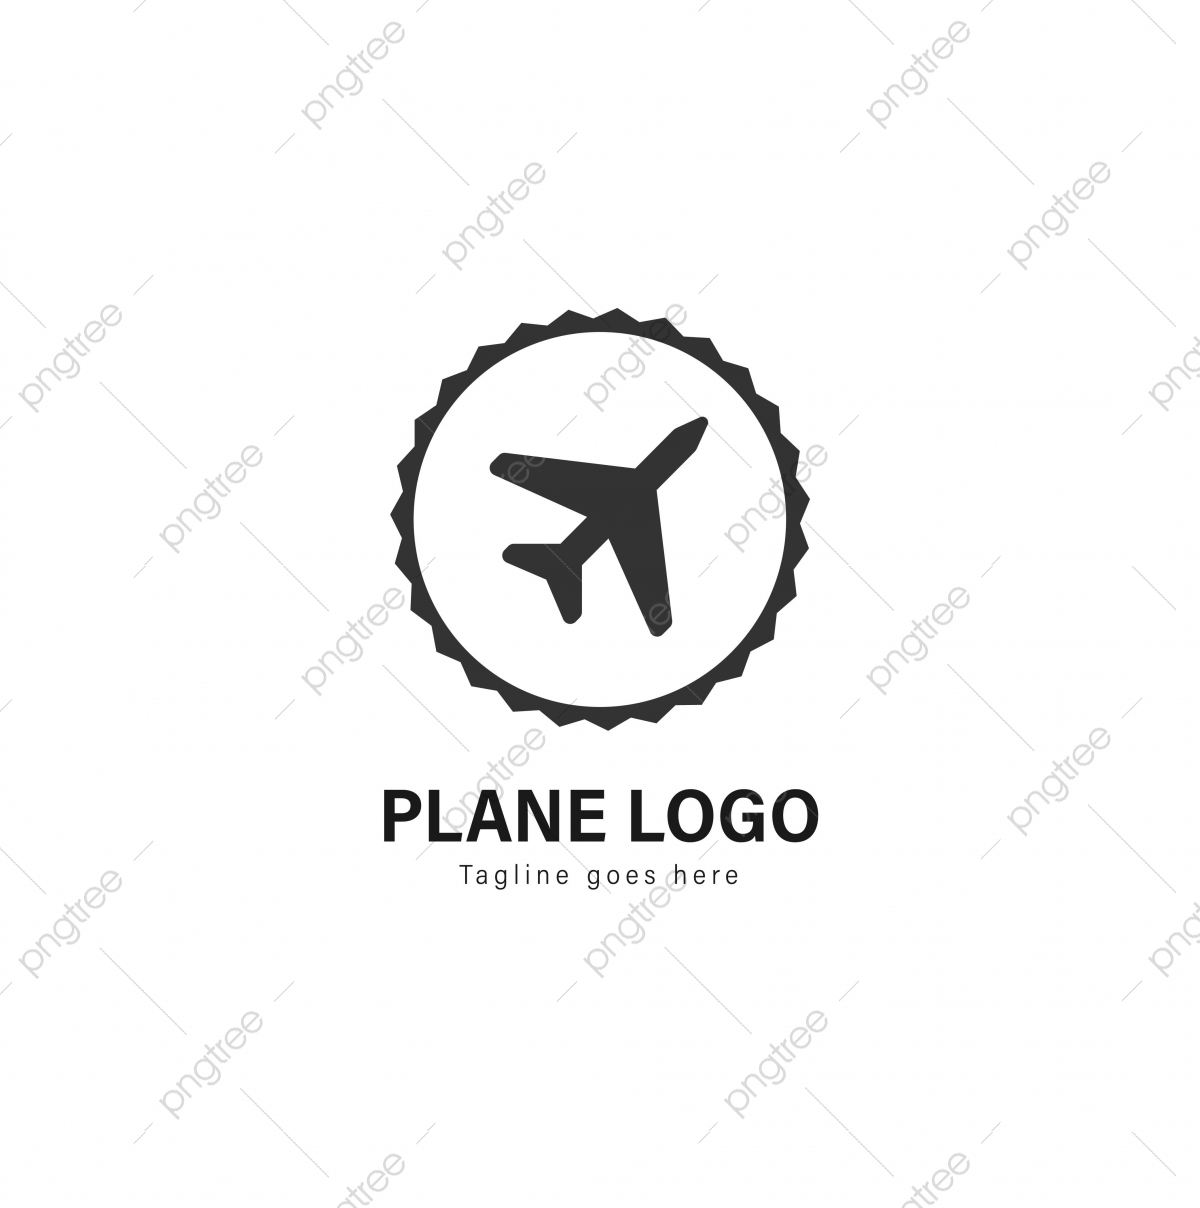 Plane Logo Template Design Plane Logo With Modern Frame Template Download On Pngtree